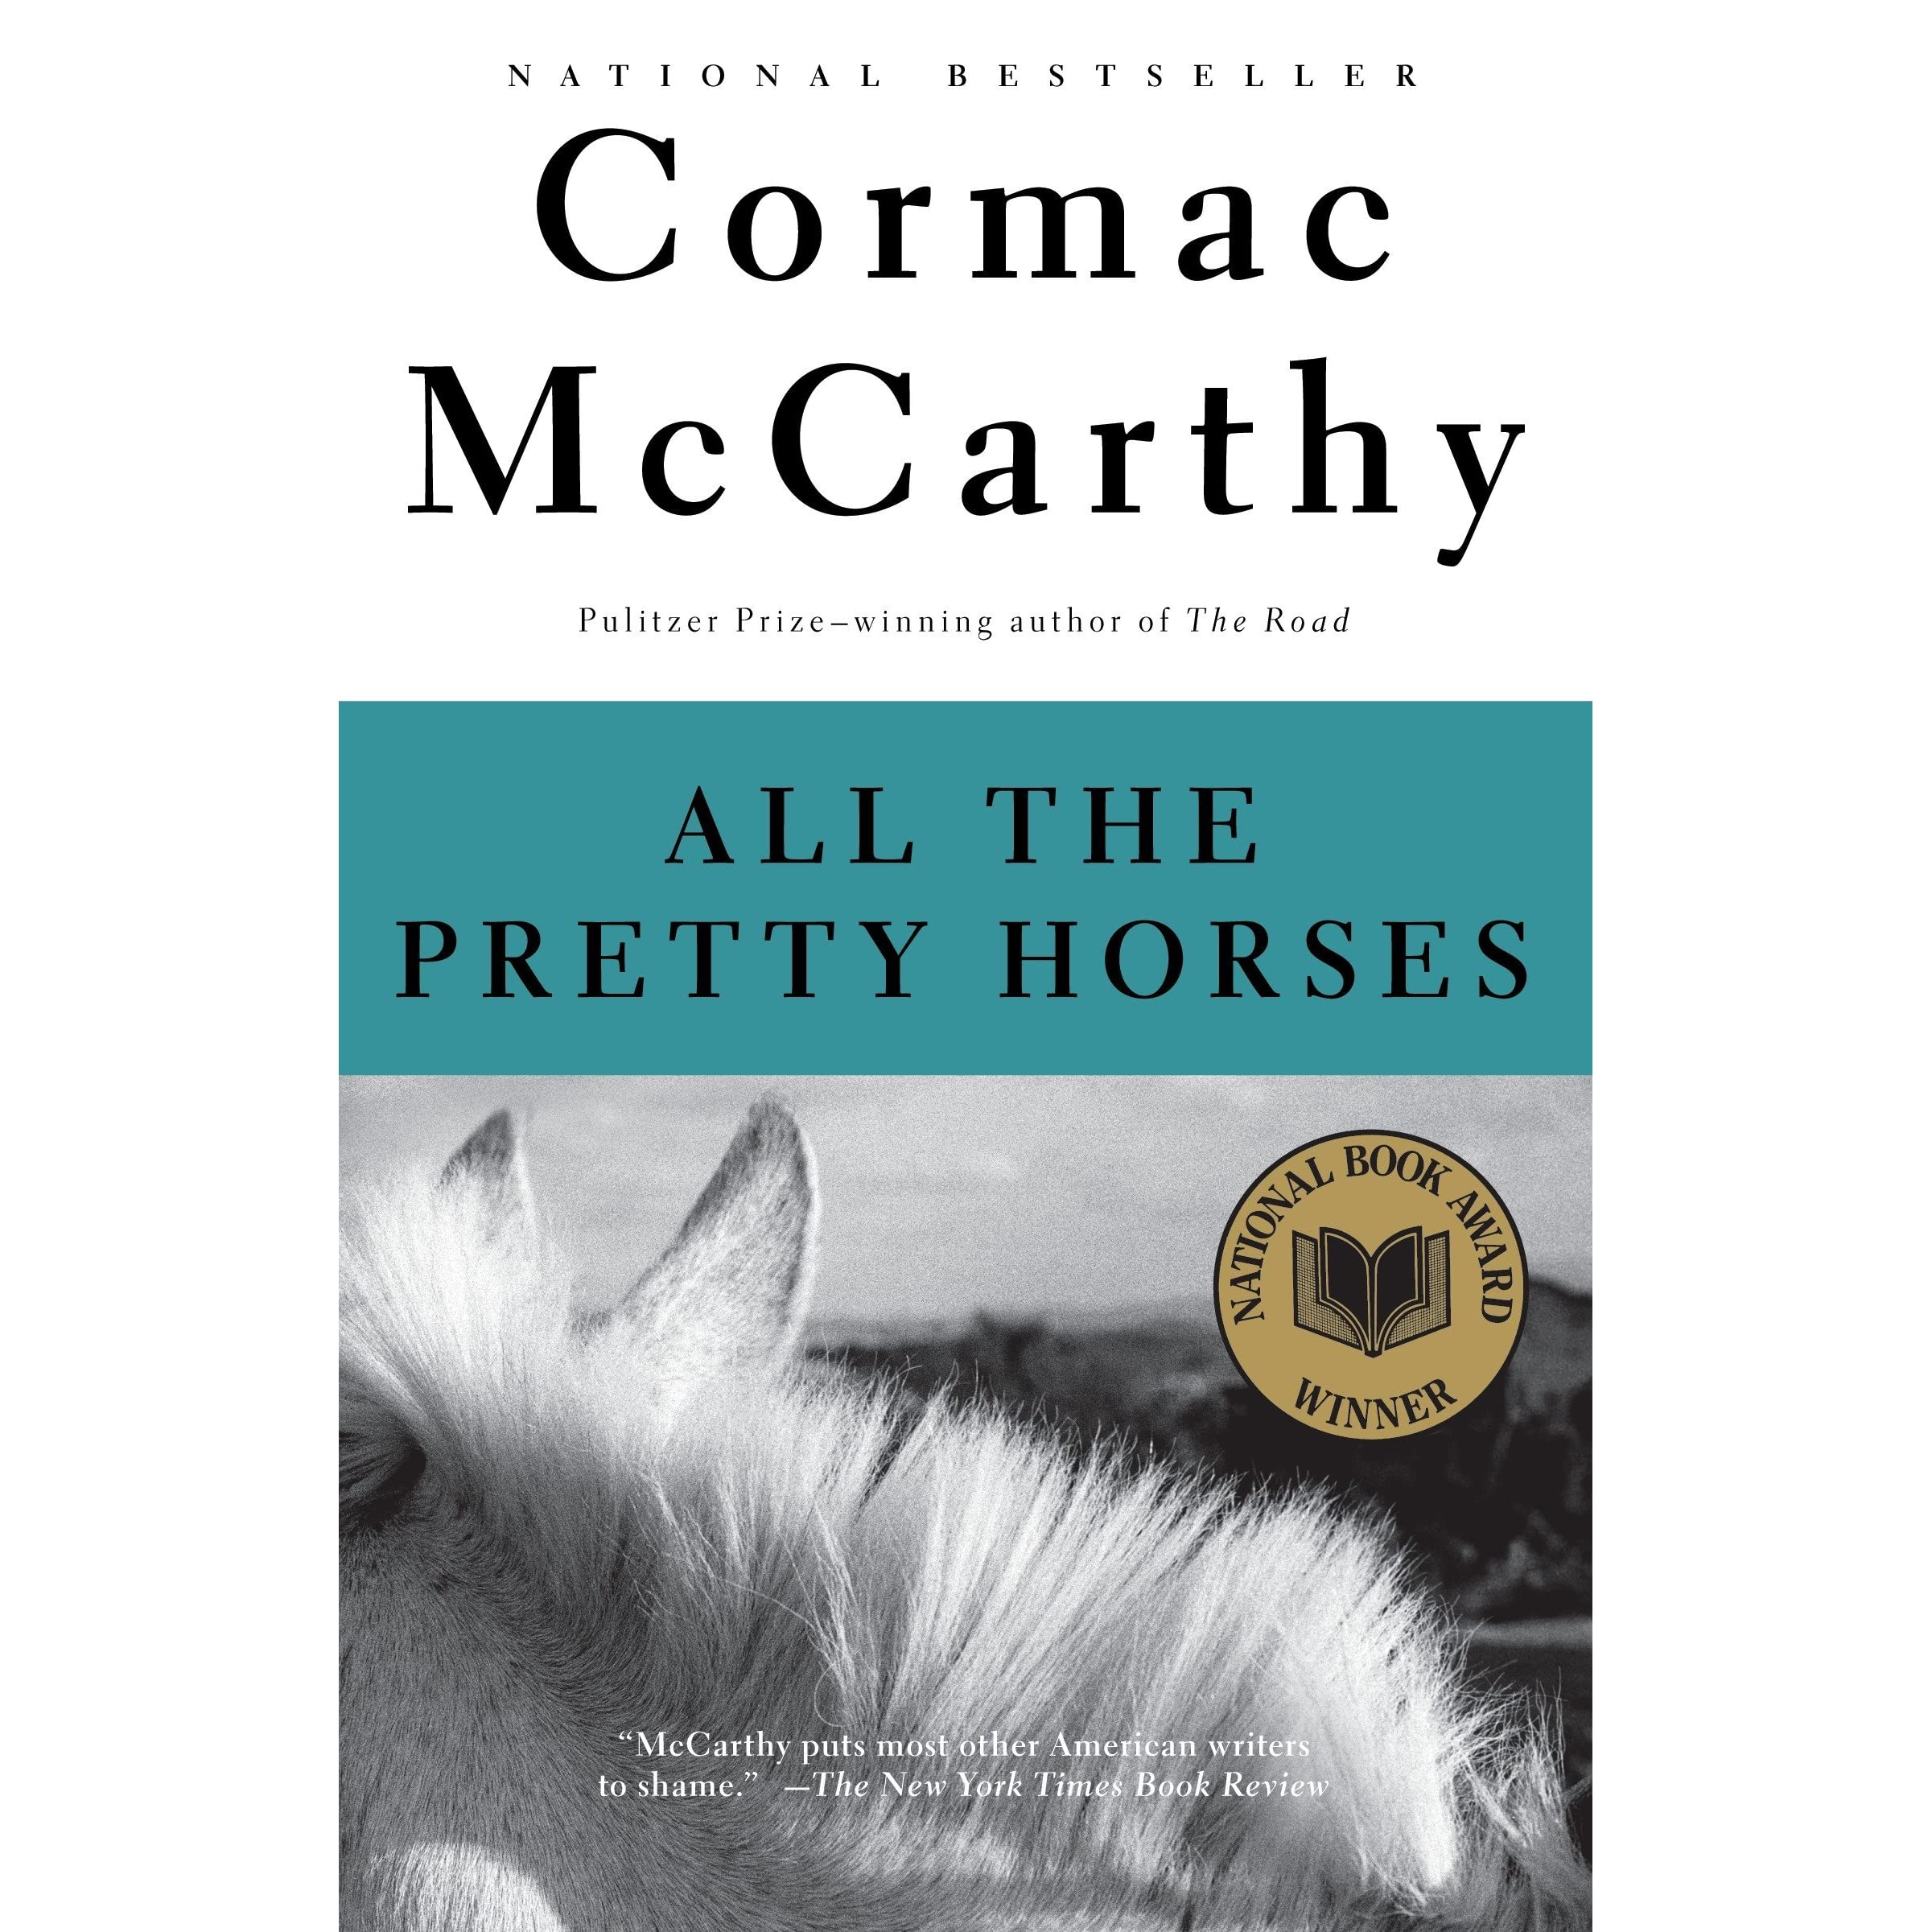 All the Pretty Horses The Border Trilogy 1 by Cormac